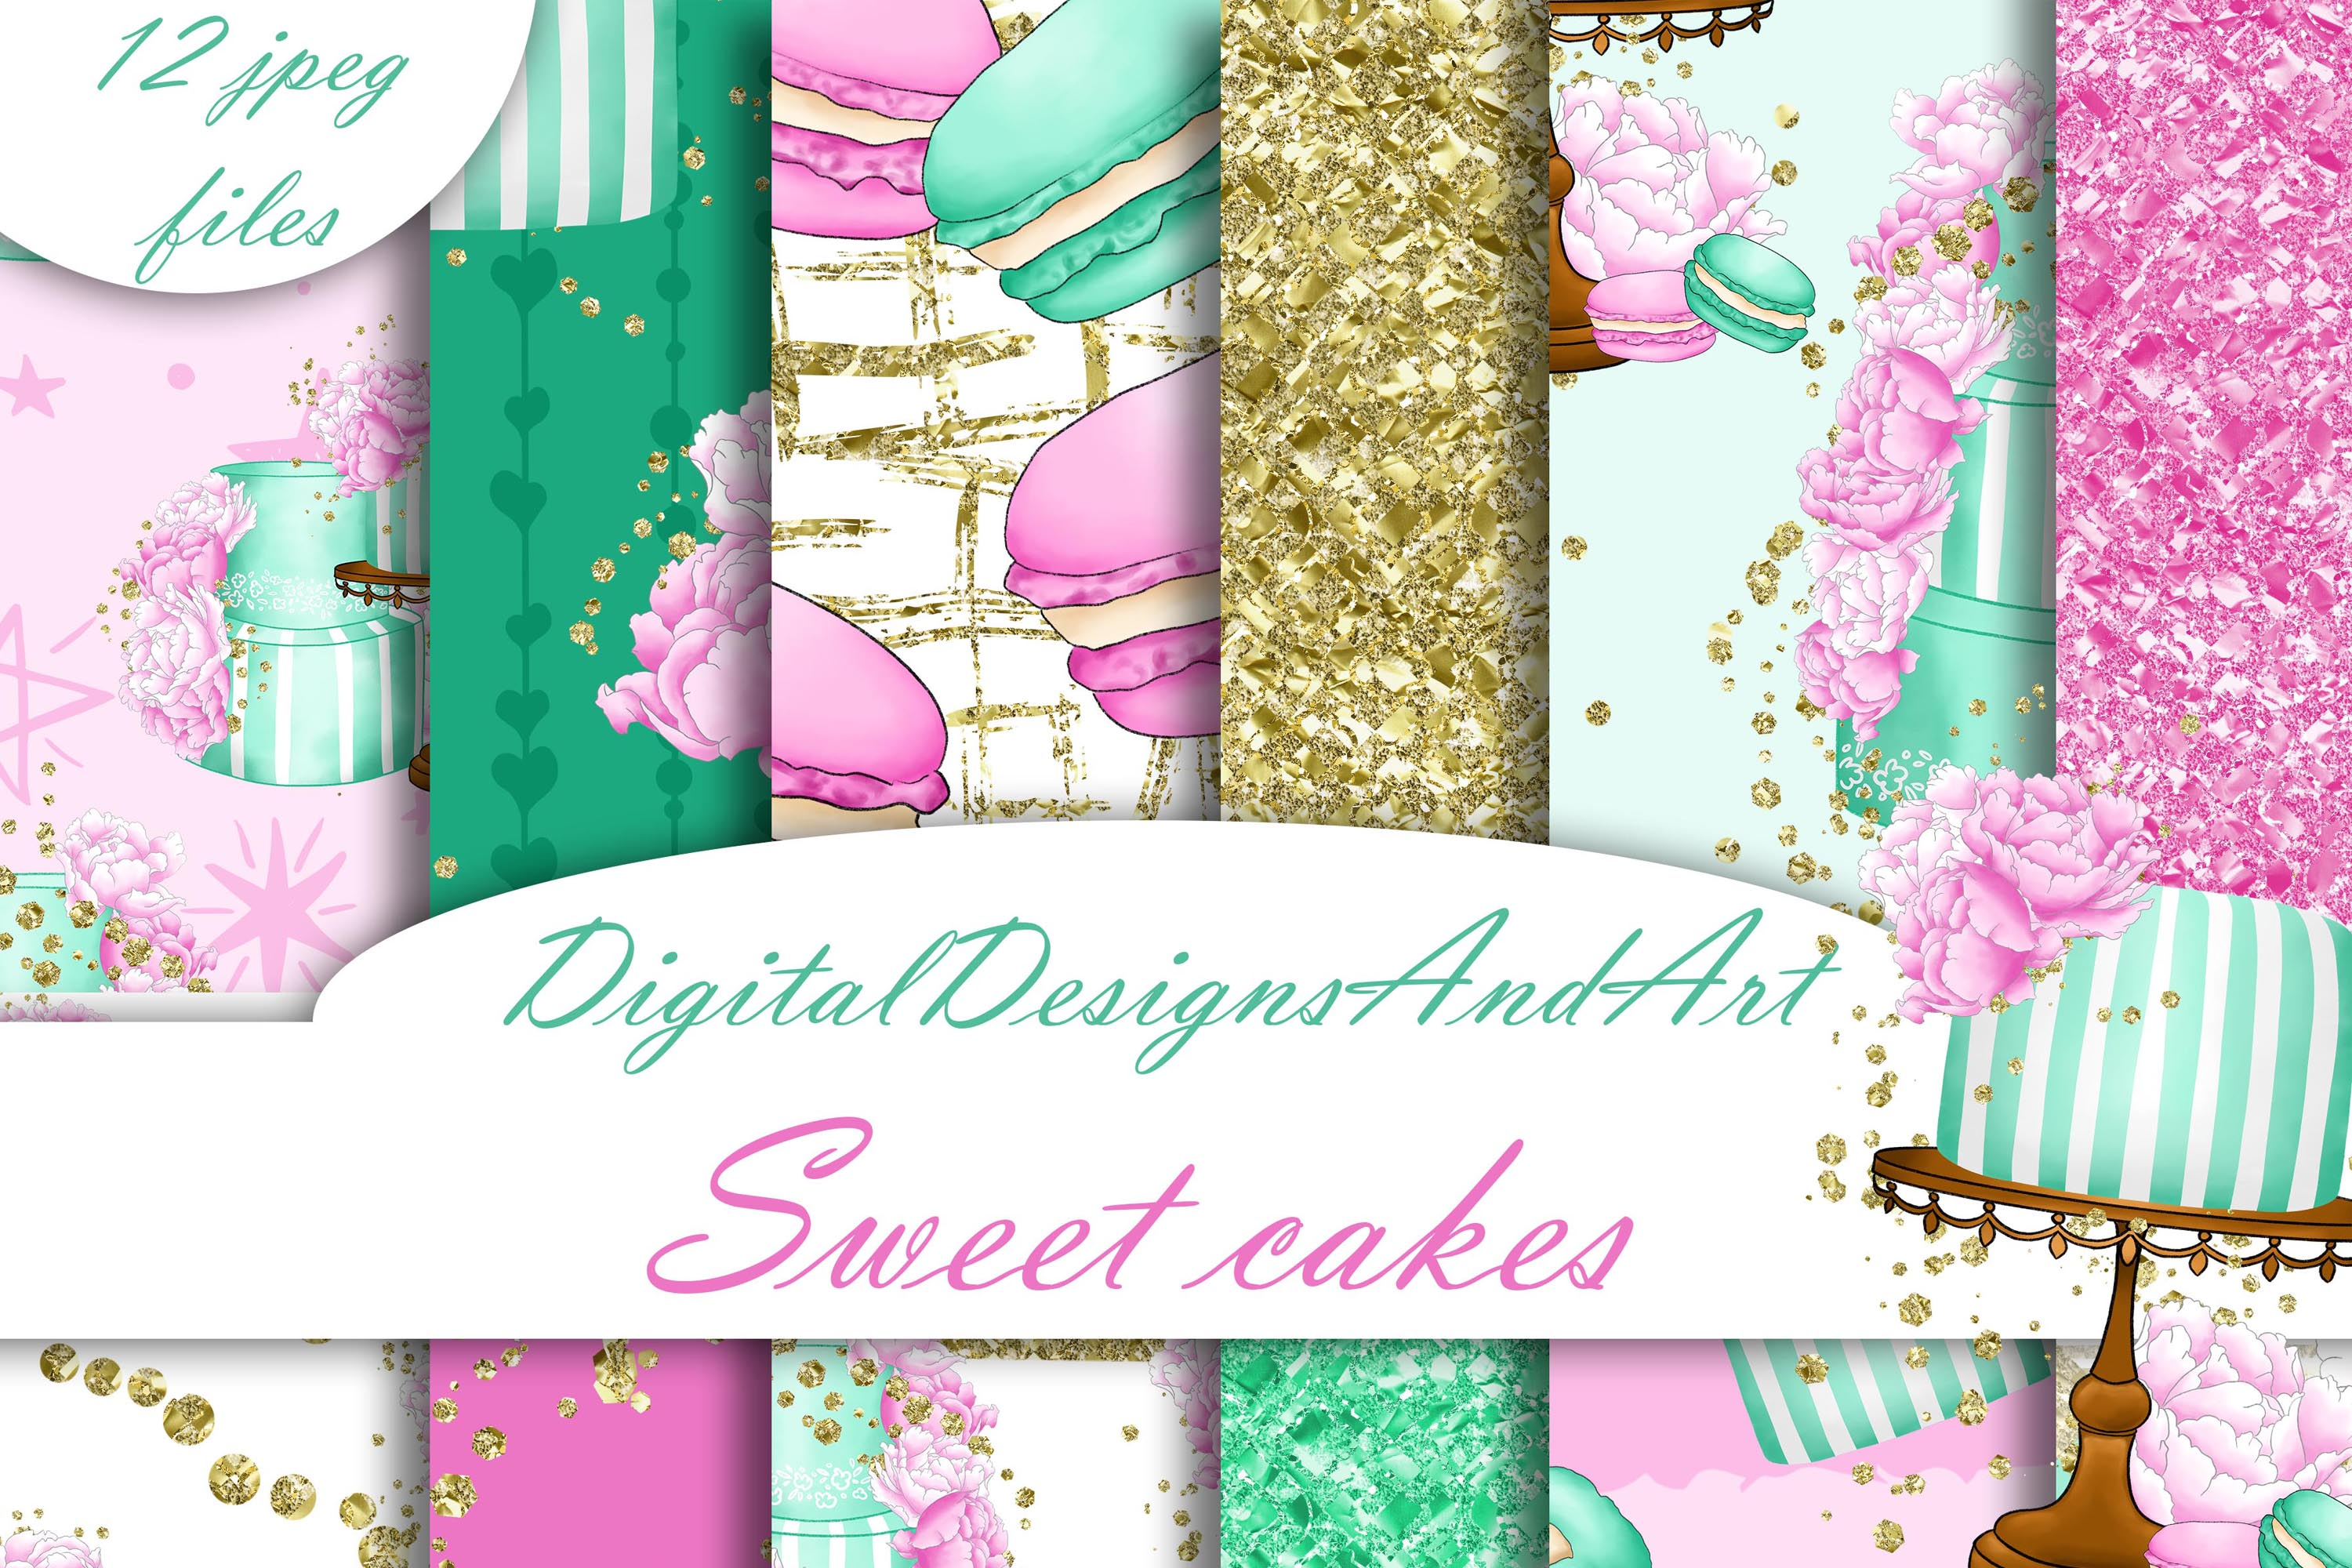 Sweet cakes patterns example image 1